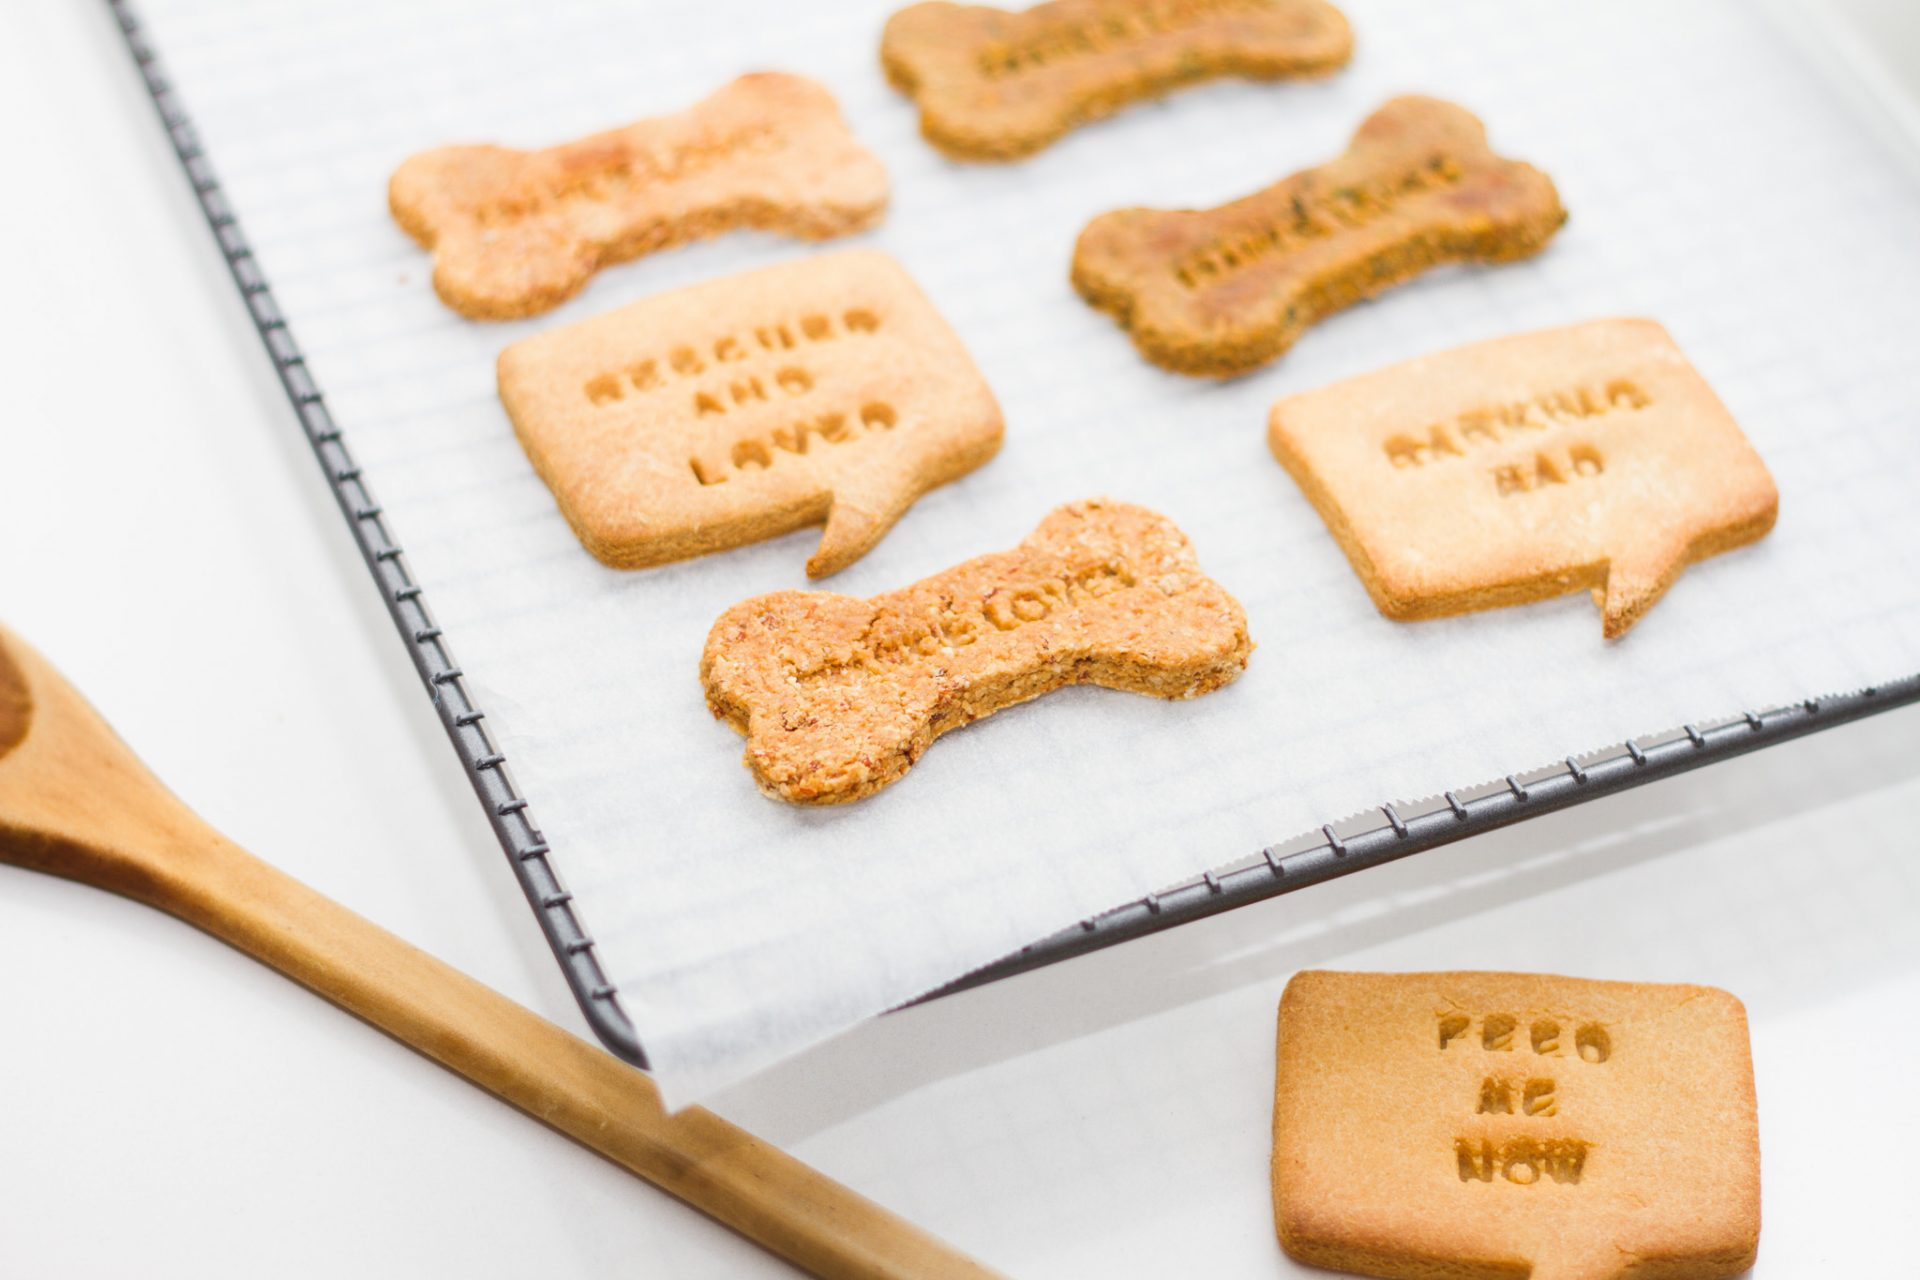 Frankie Loves personalised biscuits